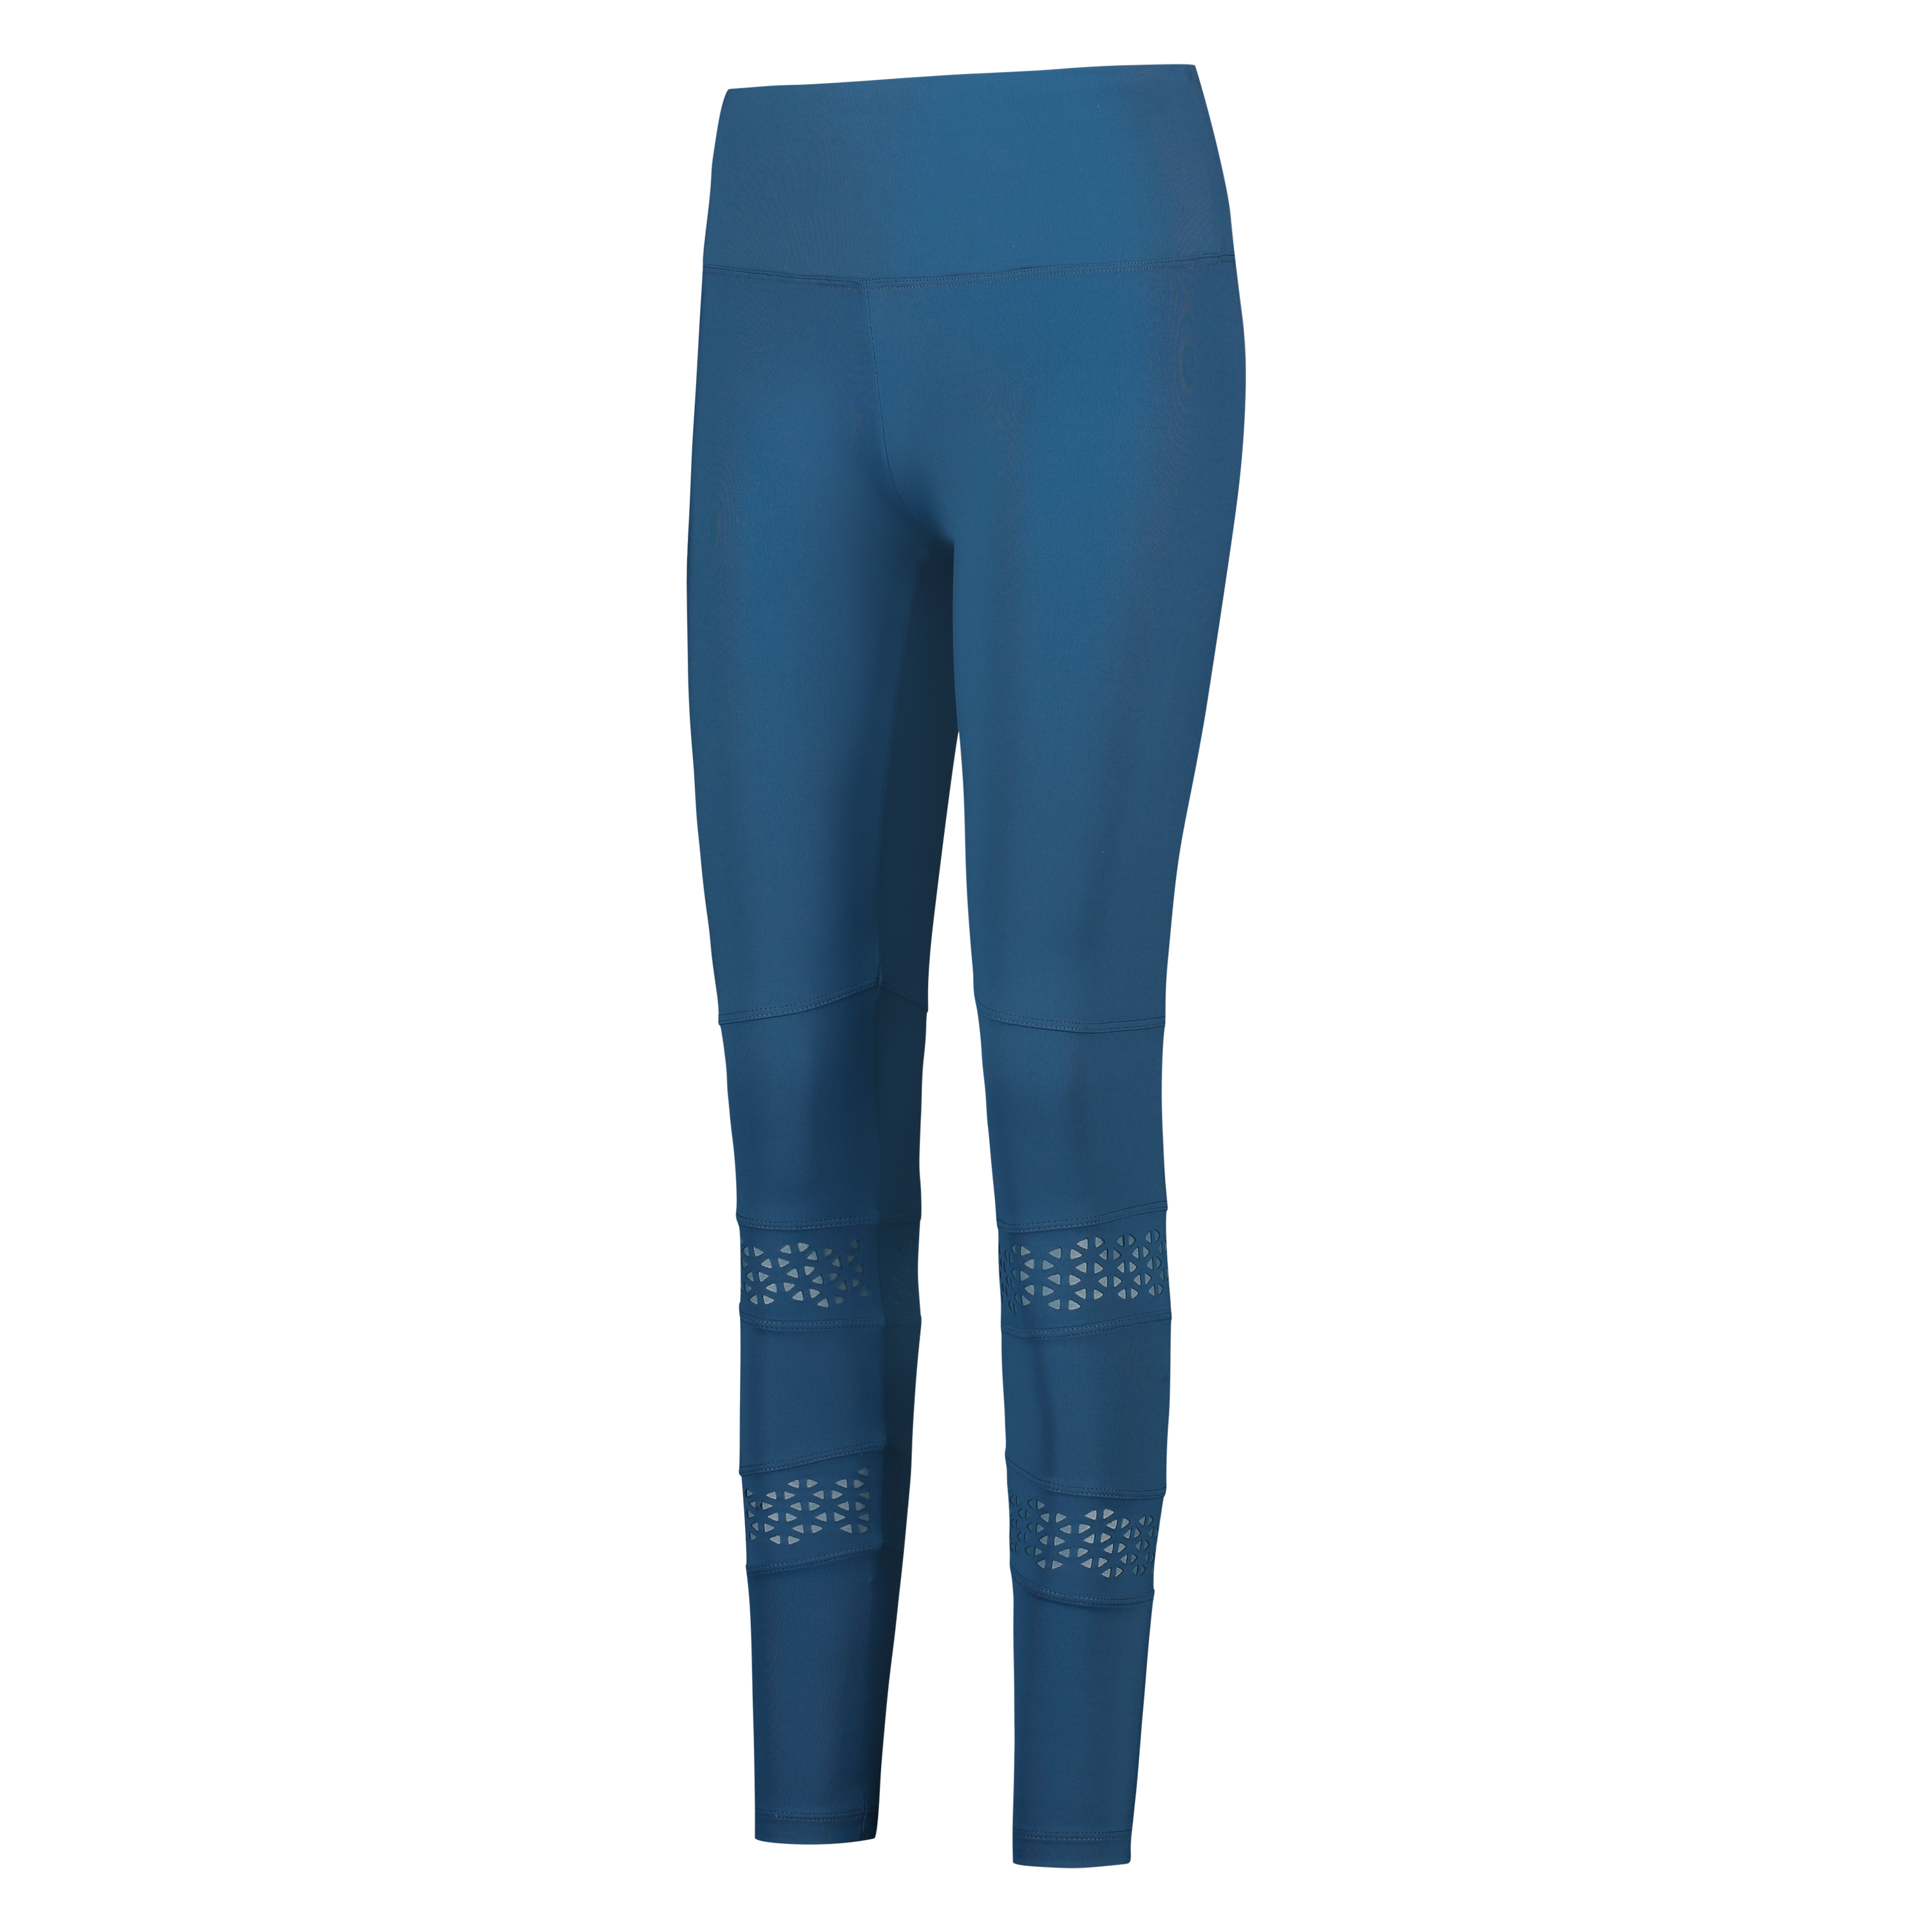 Corrigerende Sportlegging.Hkmx Hoge Sportlegging Lasercut Sportleggings Hunkemoller